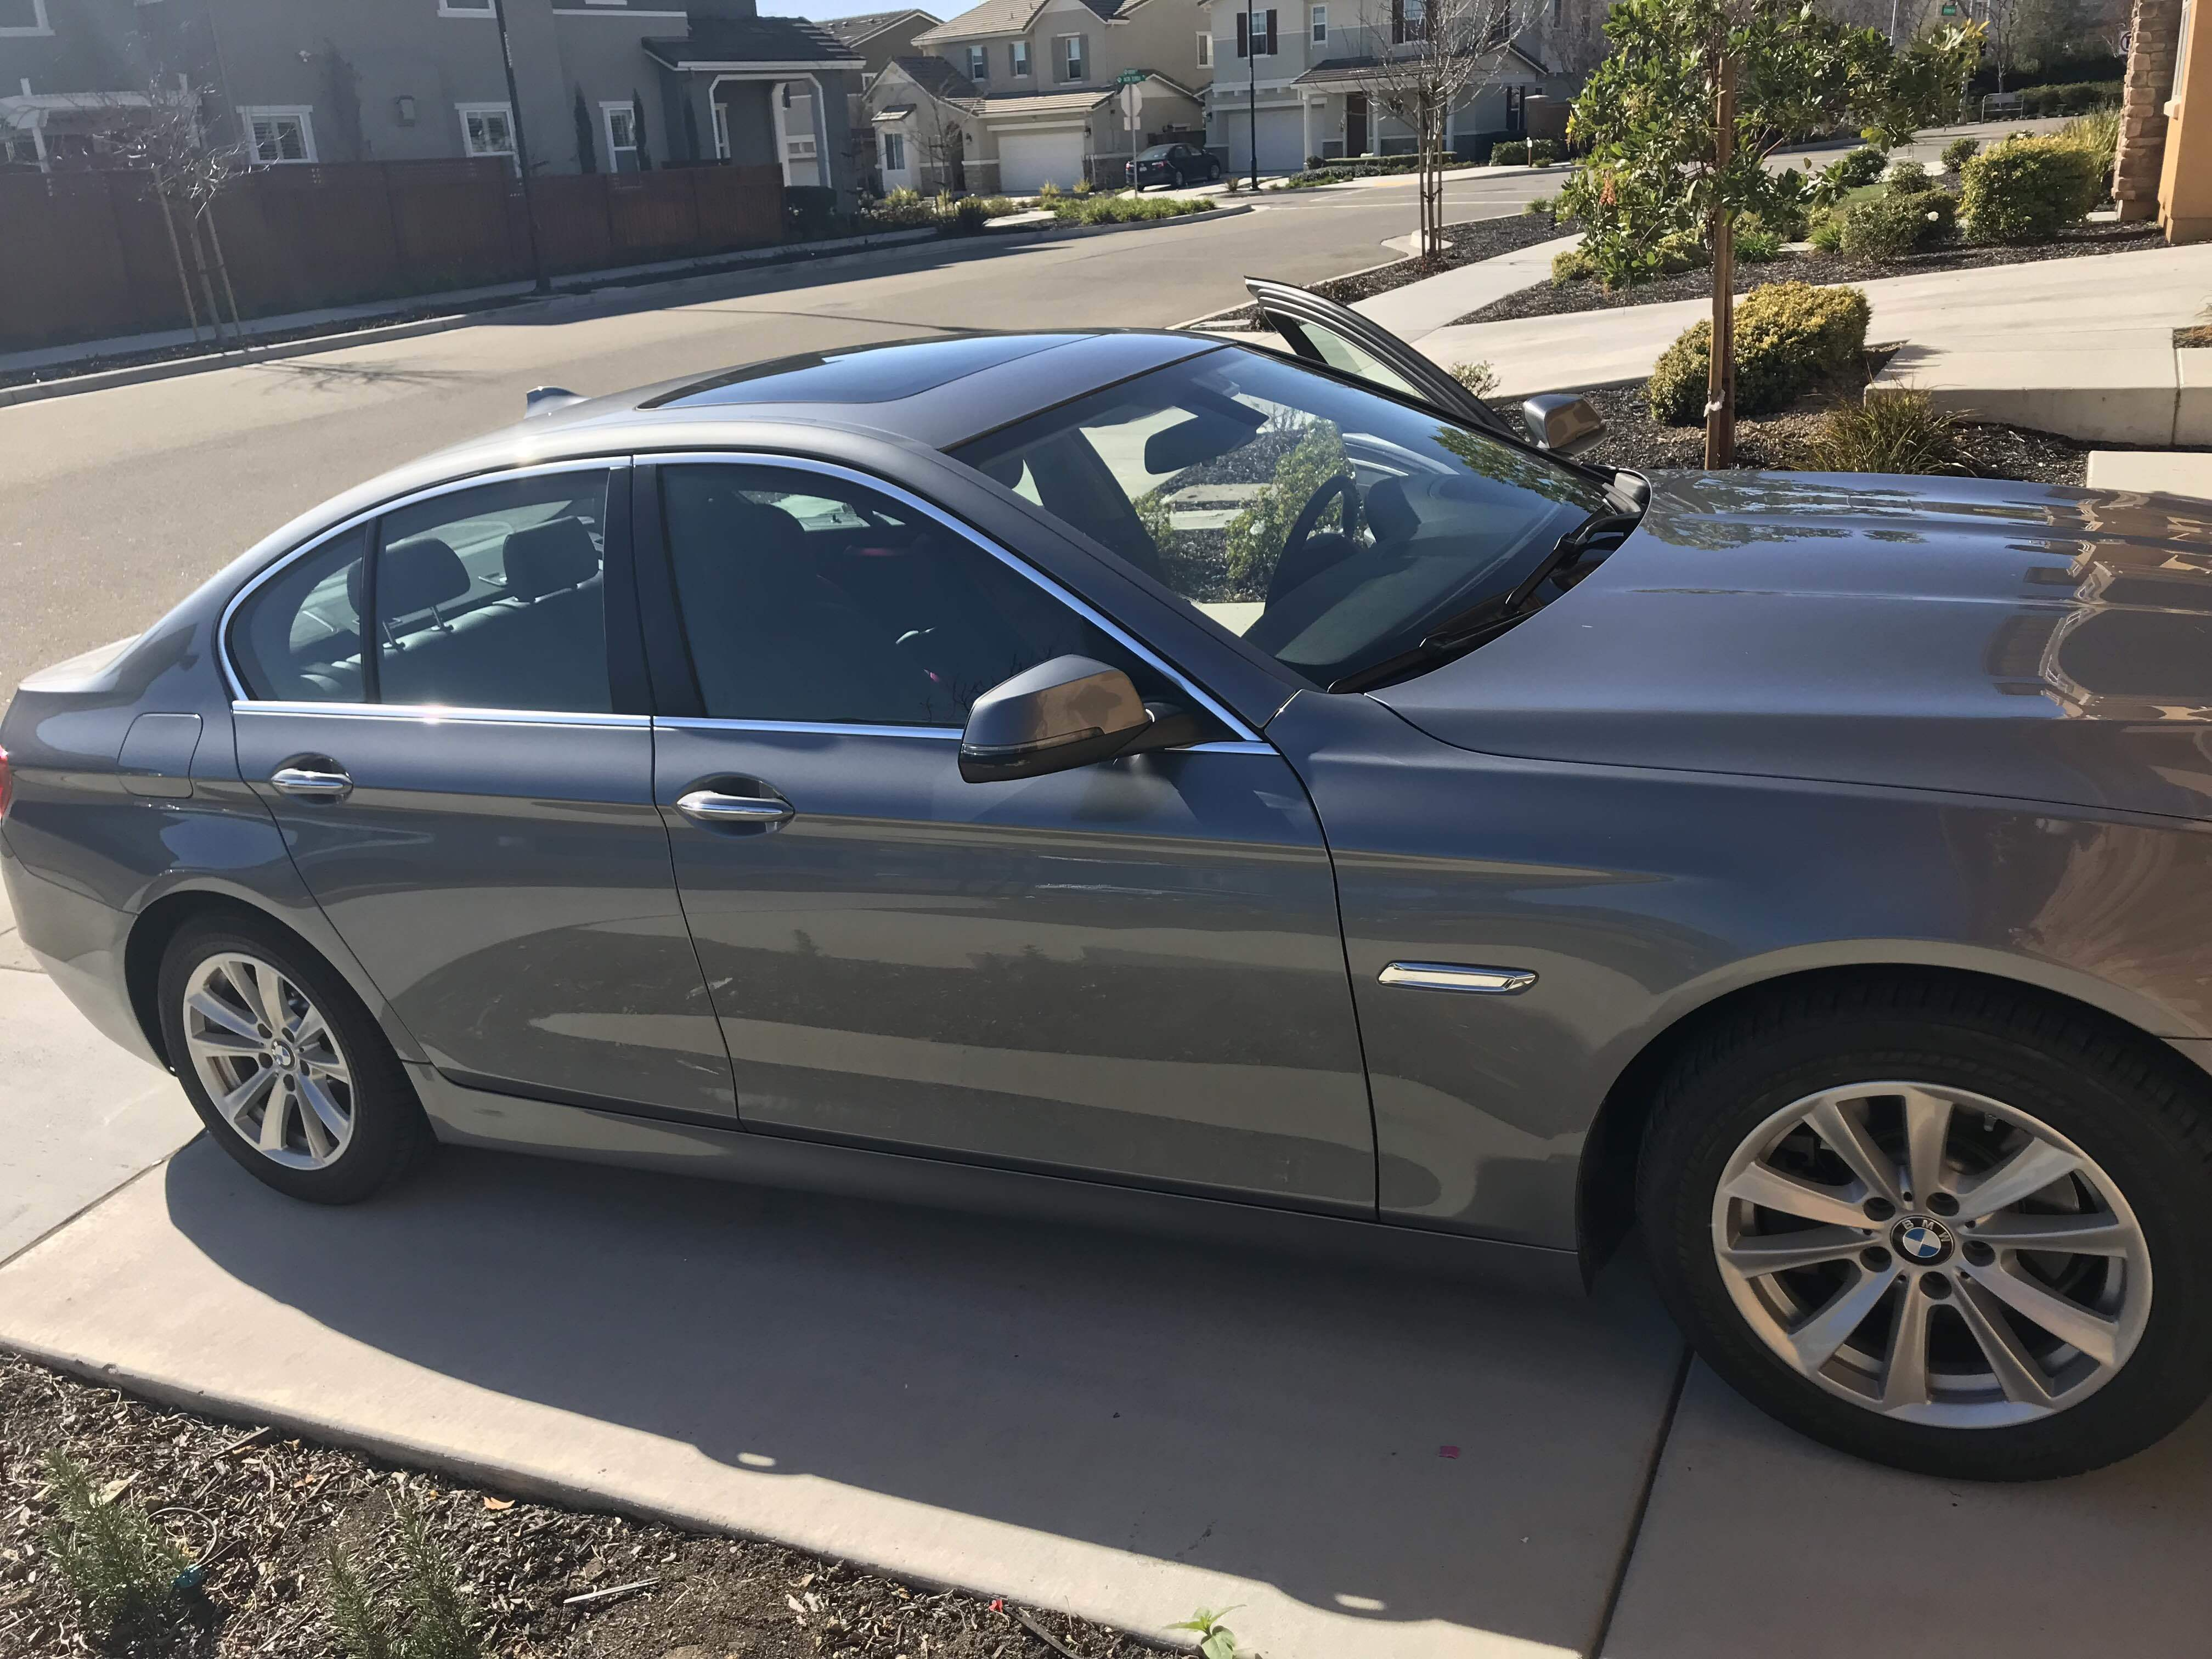 BMW 528i 2014 40,900 miles for sale